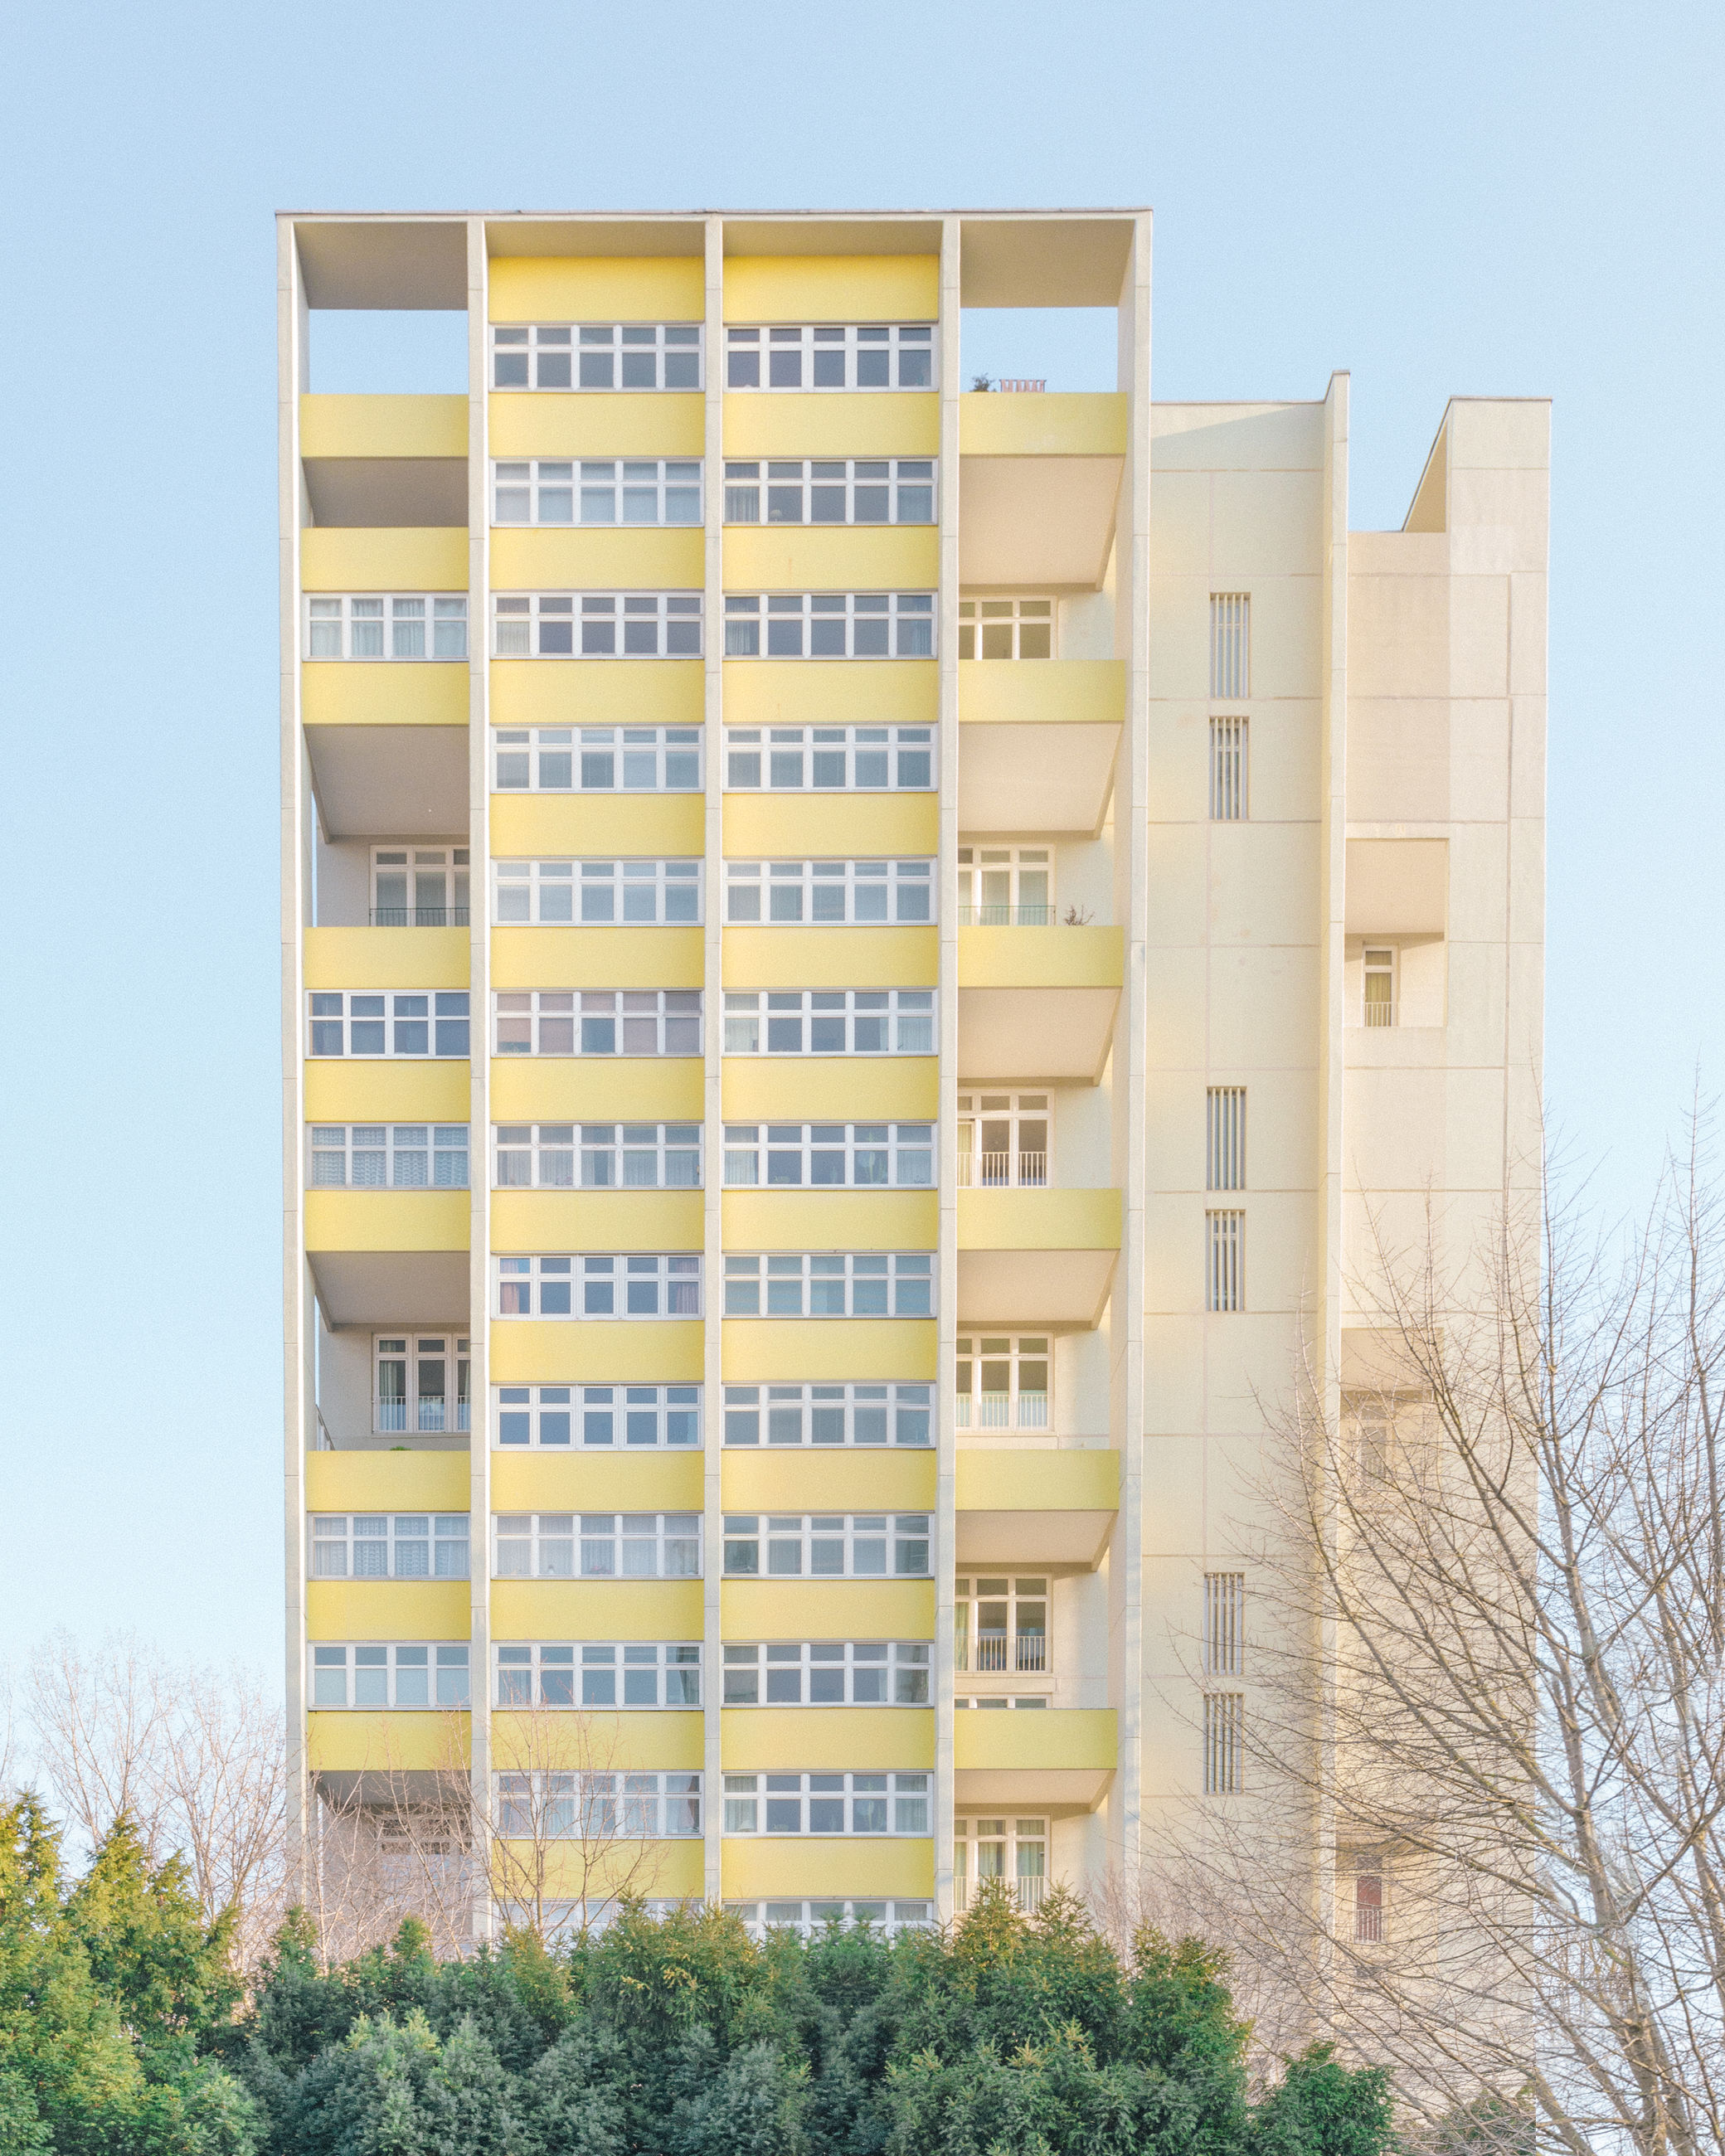 building exterior, architecture, built structure, no people, sky, building, plant, nature, tree, day, low angle view, clear sky, residential district, window, modern, city, outdoors, apartment, office building exterior, office